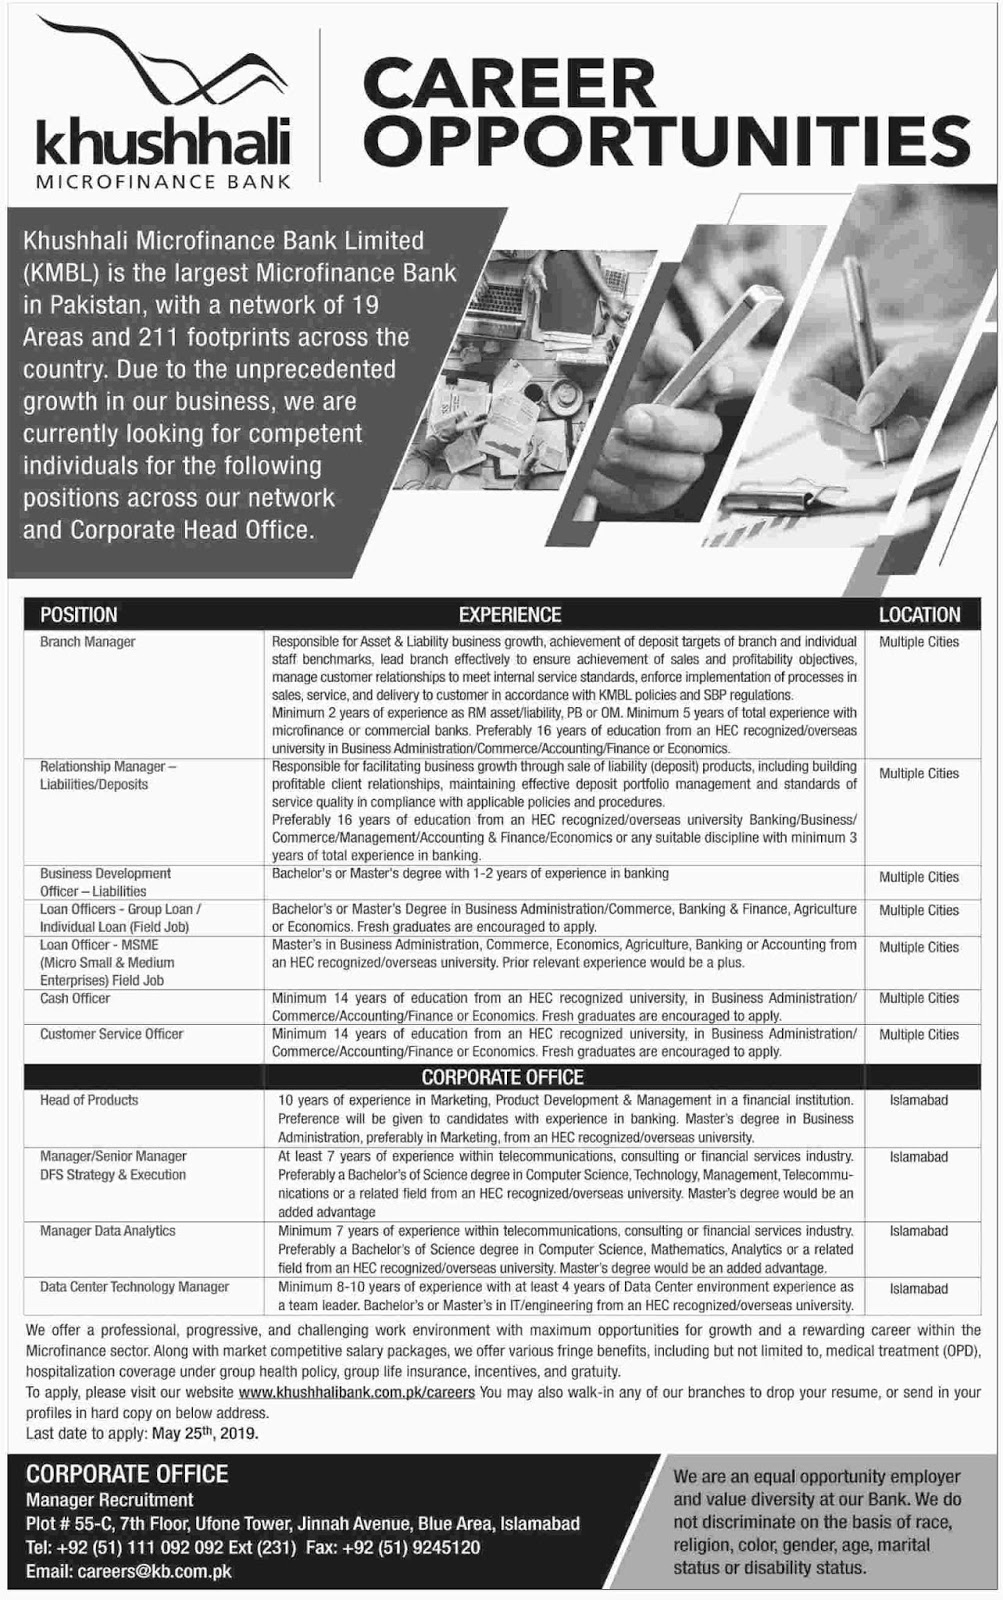 ➨ #Jobs - #Career_Opportunities - #Jobs - Pakistan's Largest MicroFinance Bank is Careers at Khushhali Bank  –for application visit the link